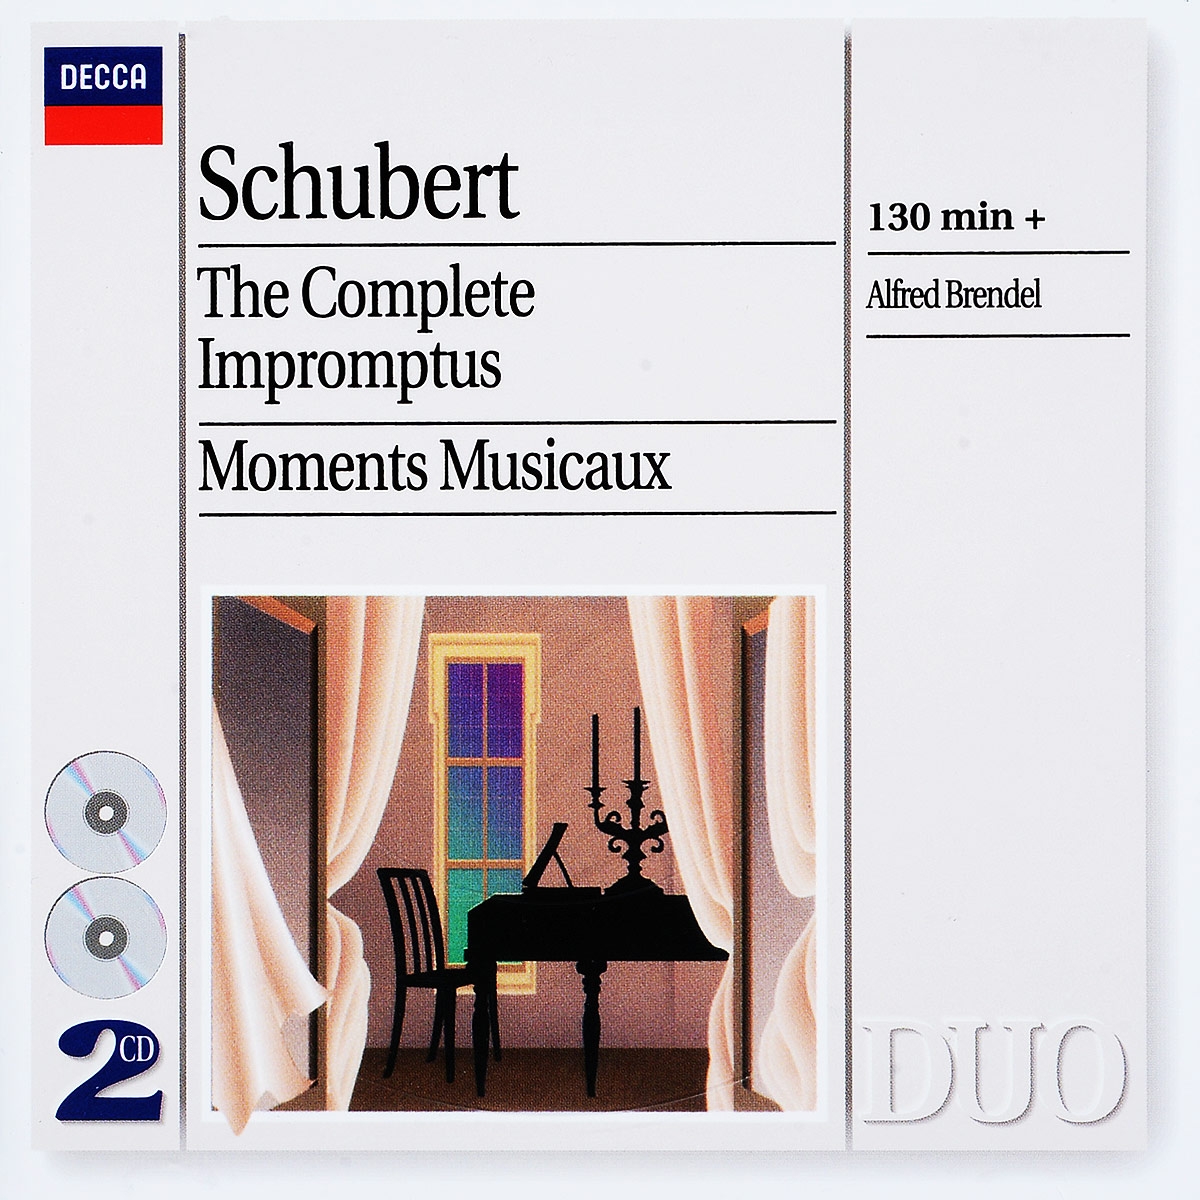 Schubert. Alfred Brendel. The Complete Impromptus - Moments Musicaux (2 CD) альфред брендель alfred brendel schubert complete impromptus